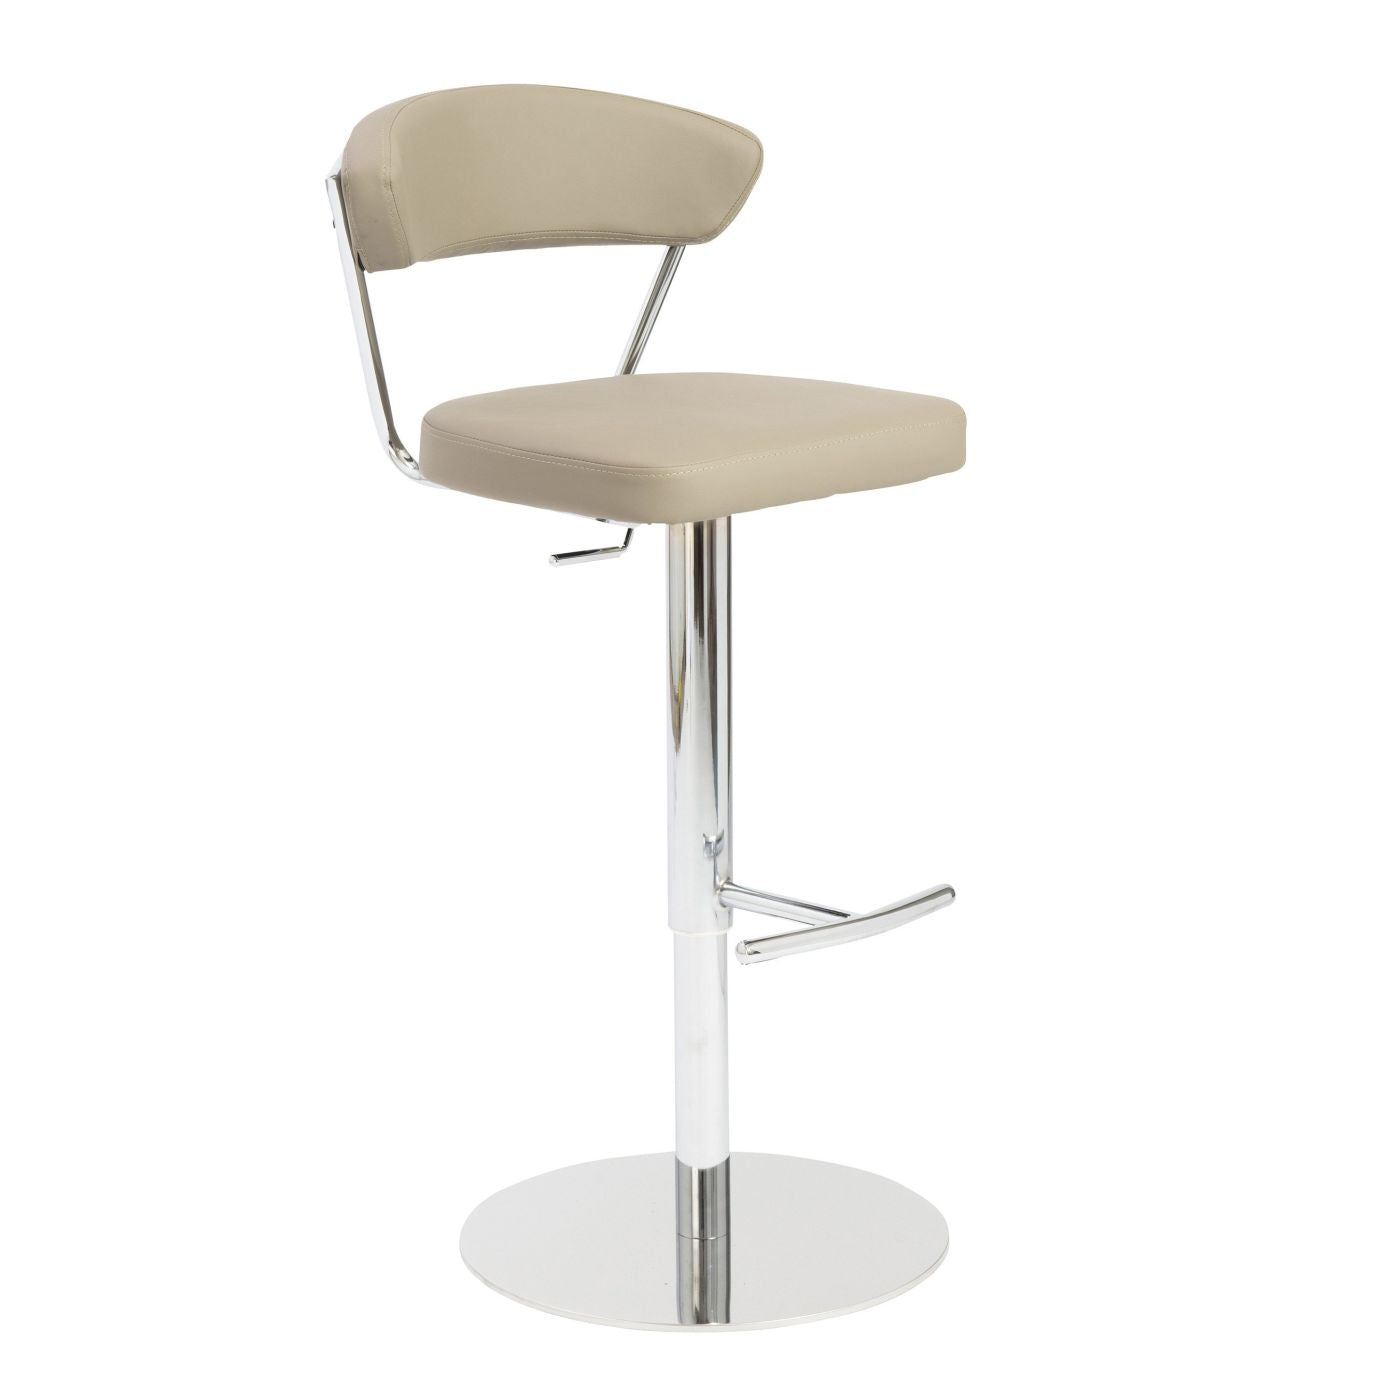 Excellent Buy Euro Style Euro 05105Tpe Draco Adjustable Swivel Bar Counter Stool In Taupe With Chrome Base At Contemporary Furniture Warehouse Ncnpc Chair Design For Home Ncnpcorg